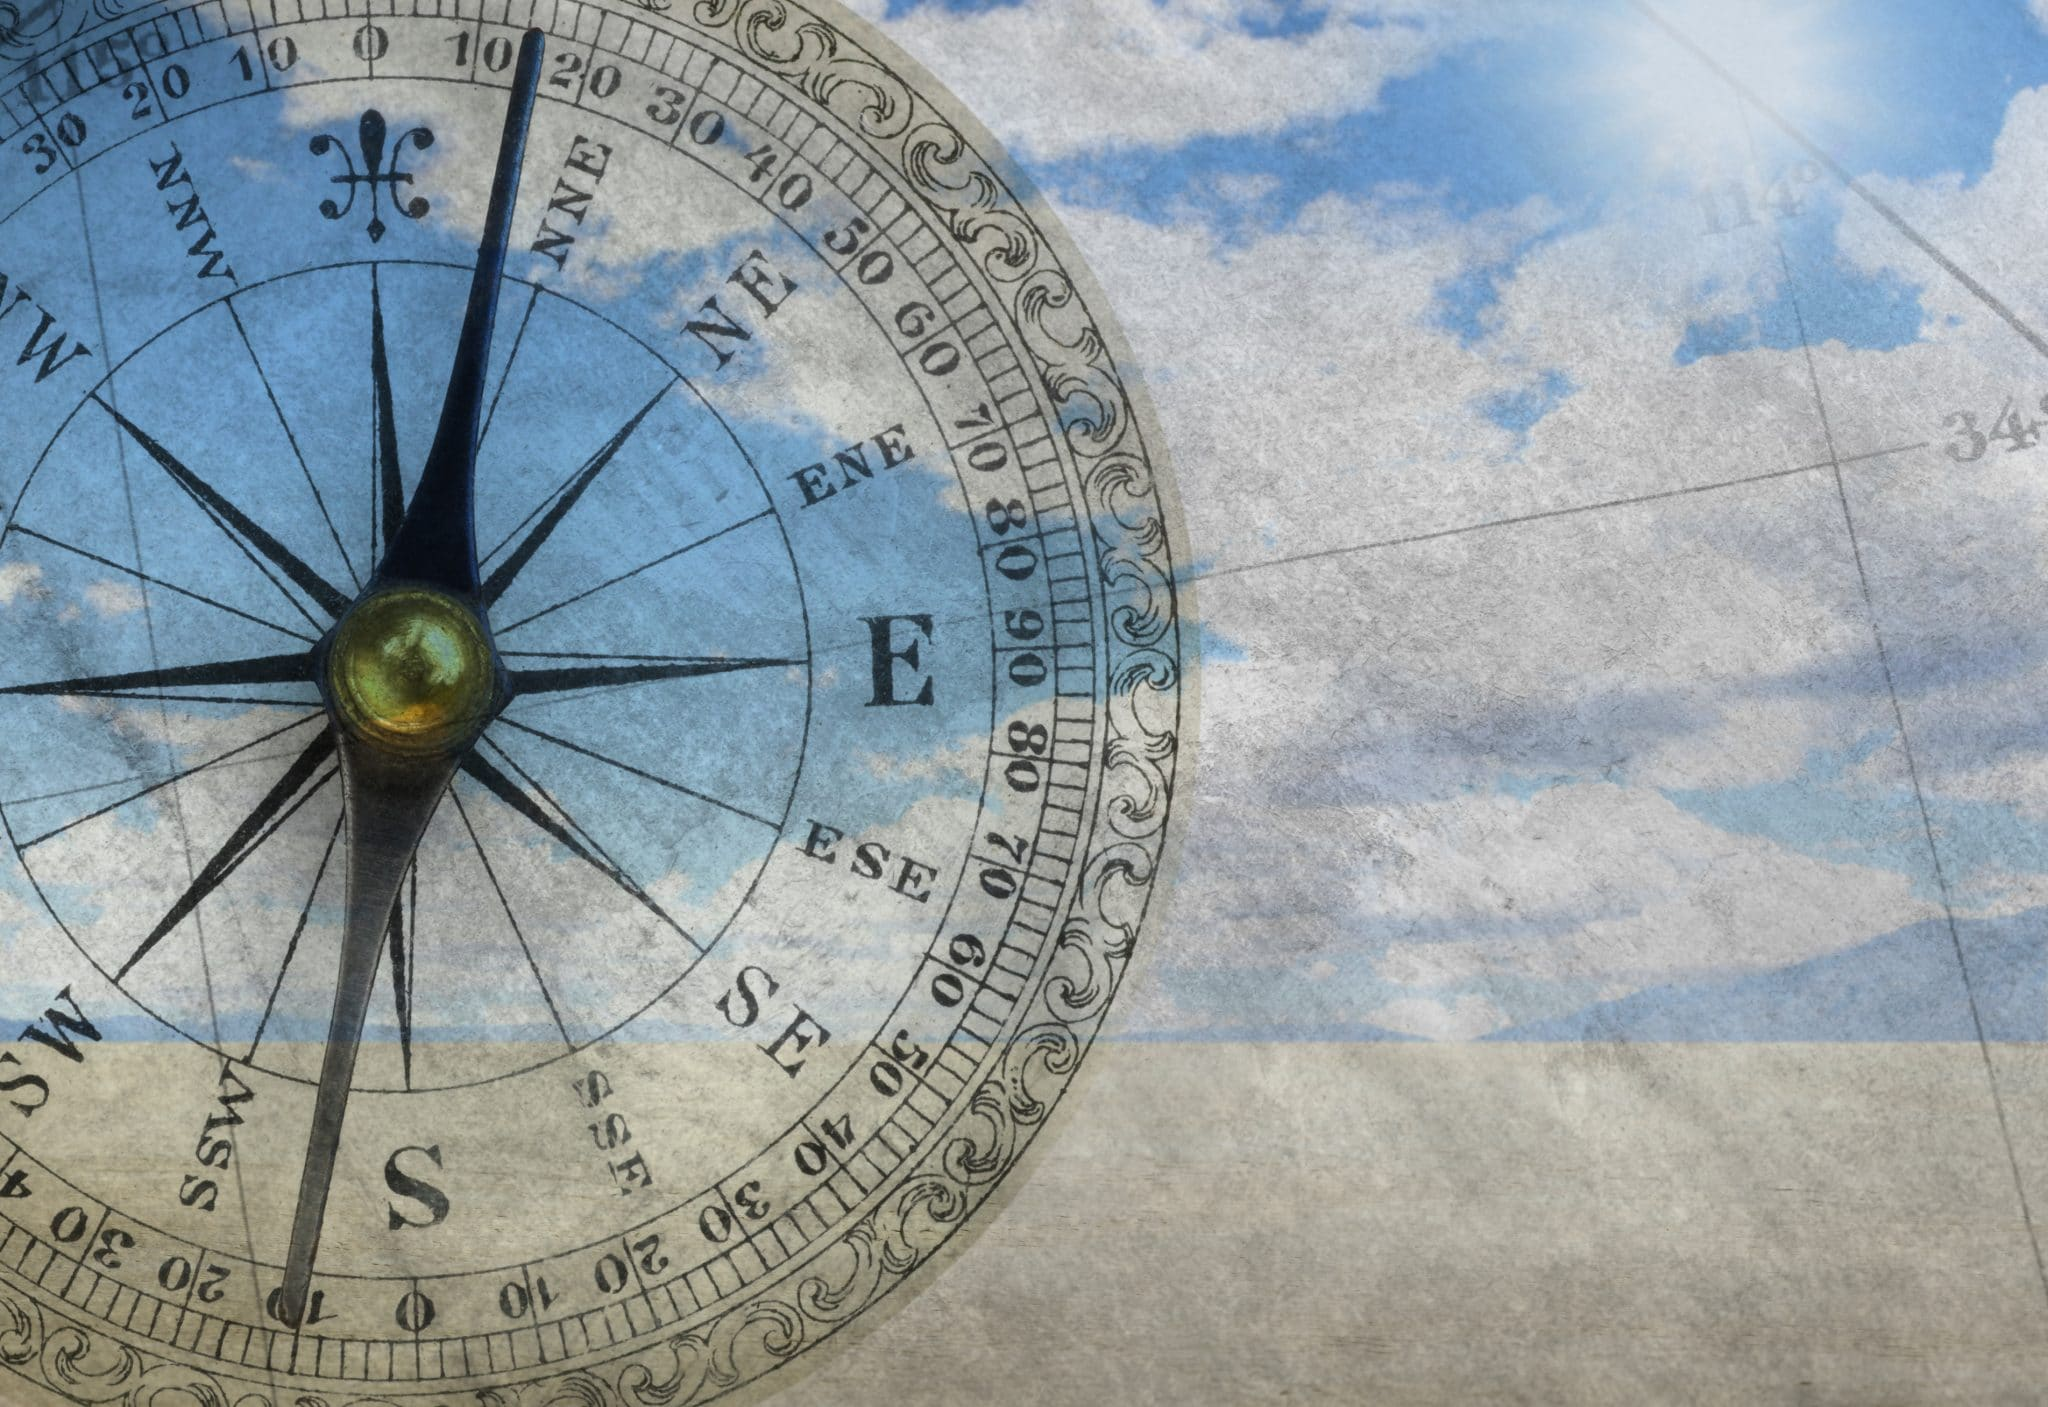 A multiple exposure of a vintage compass, an old map, and a scene from a remote desert conveying a sense of the unkown and adventure.